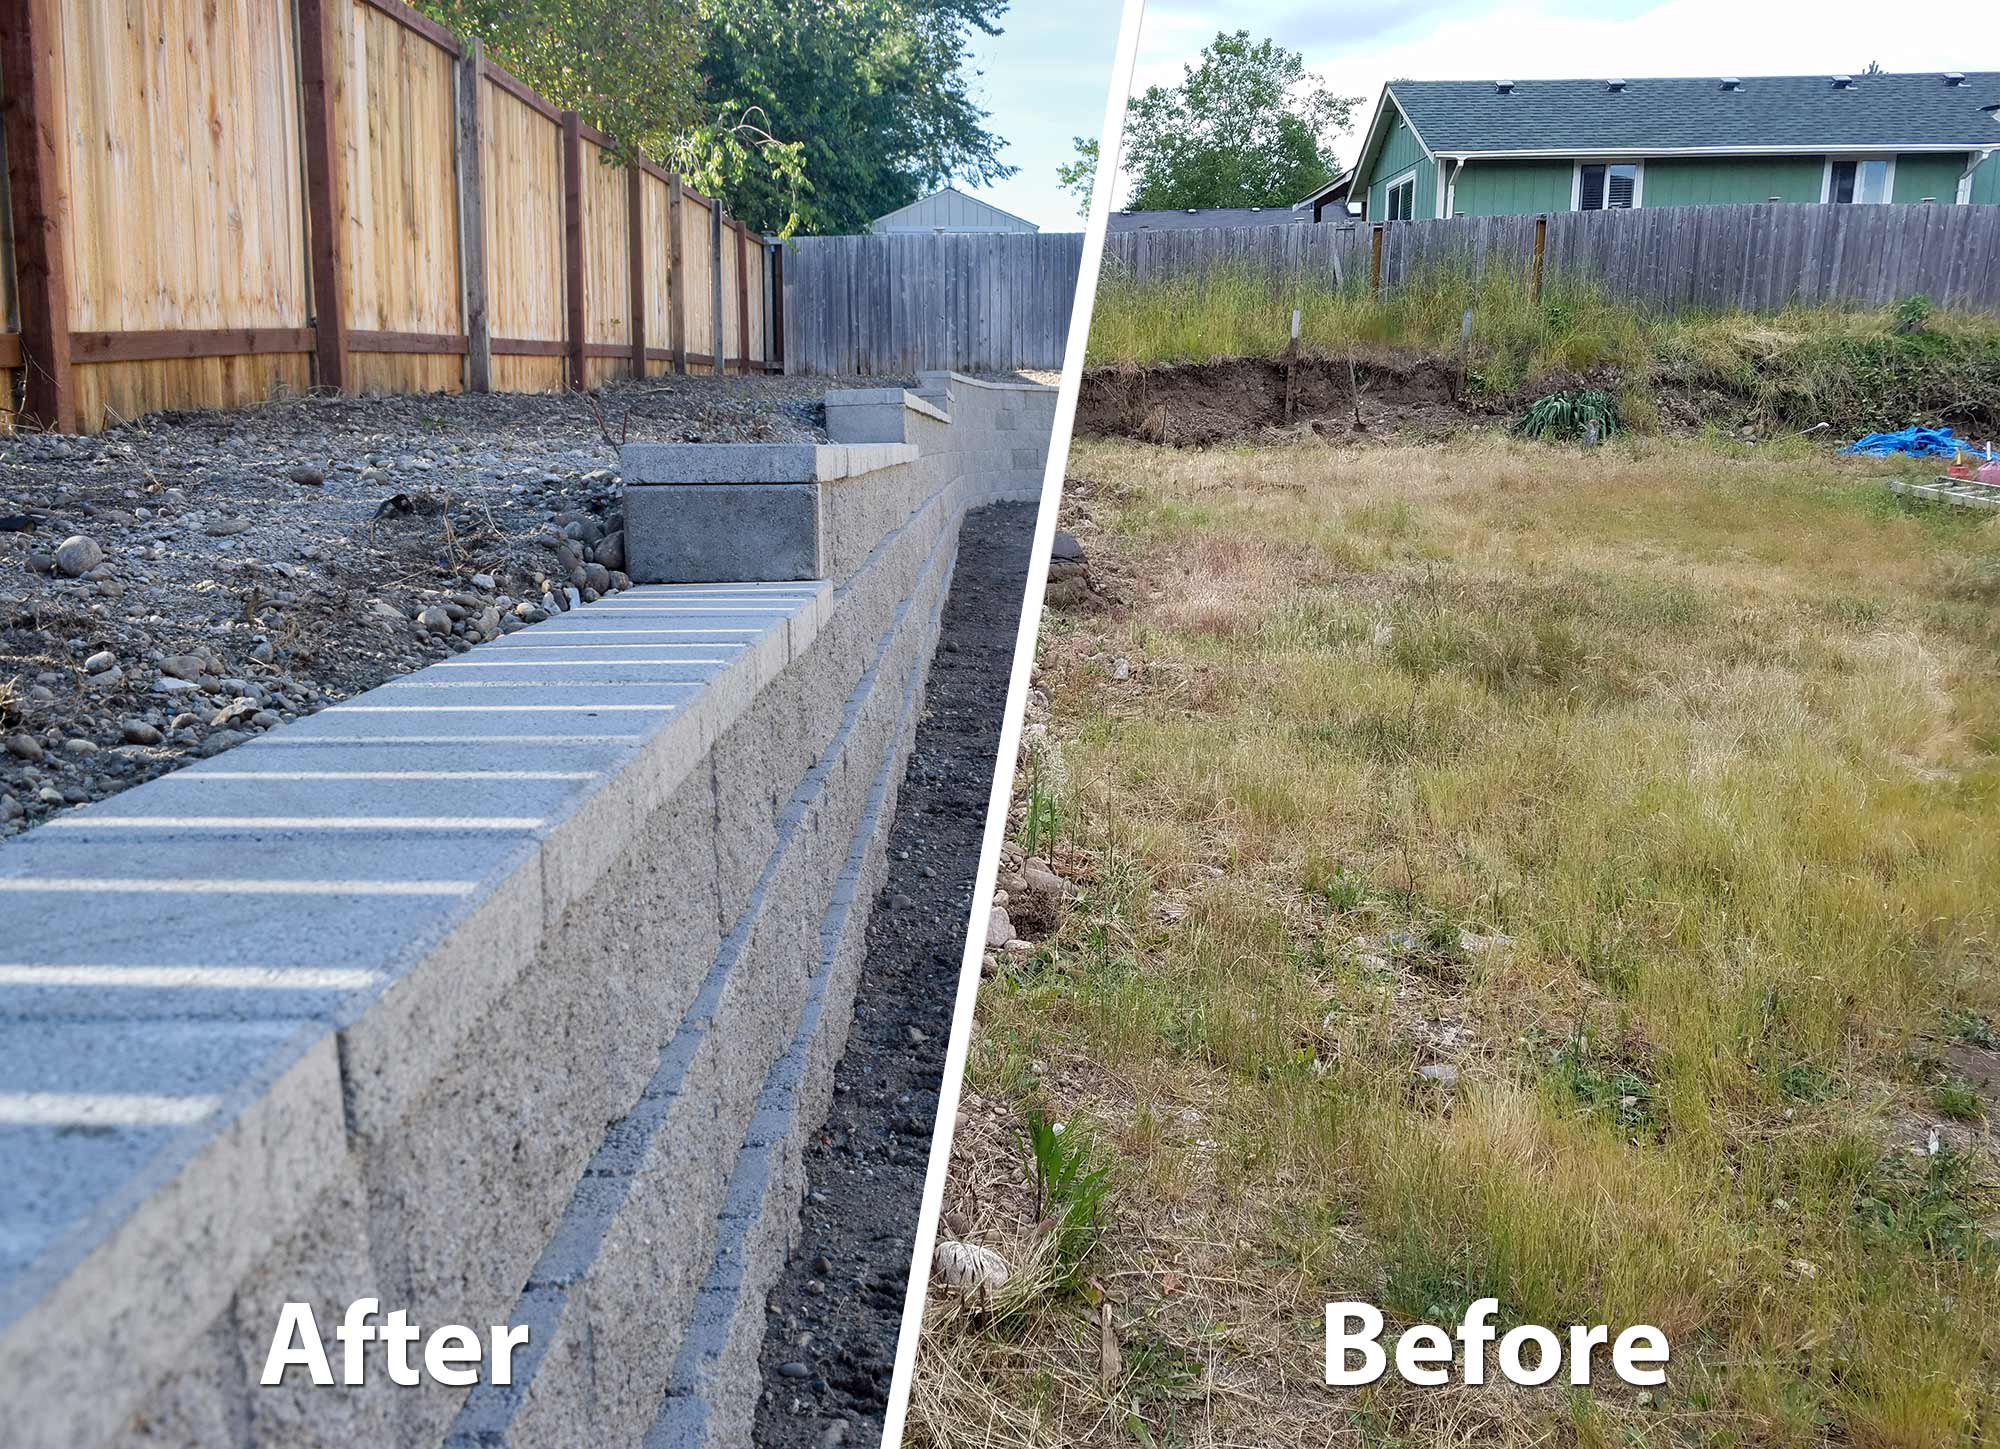 AJB built this retaining wall in the Meadows, a subdivision in Lacey.